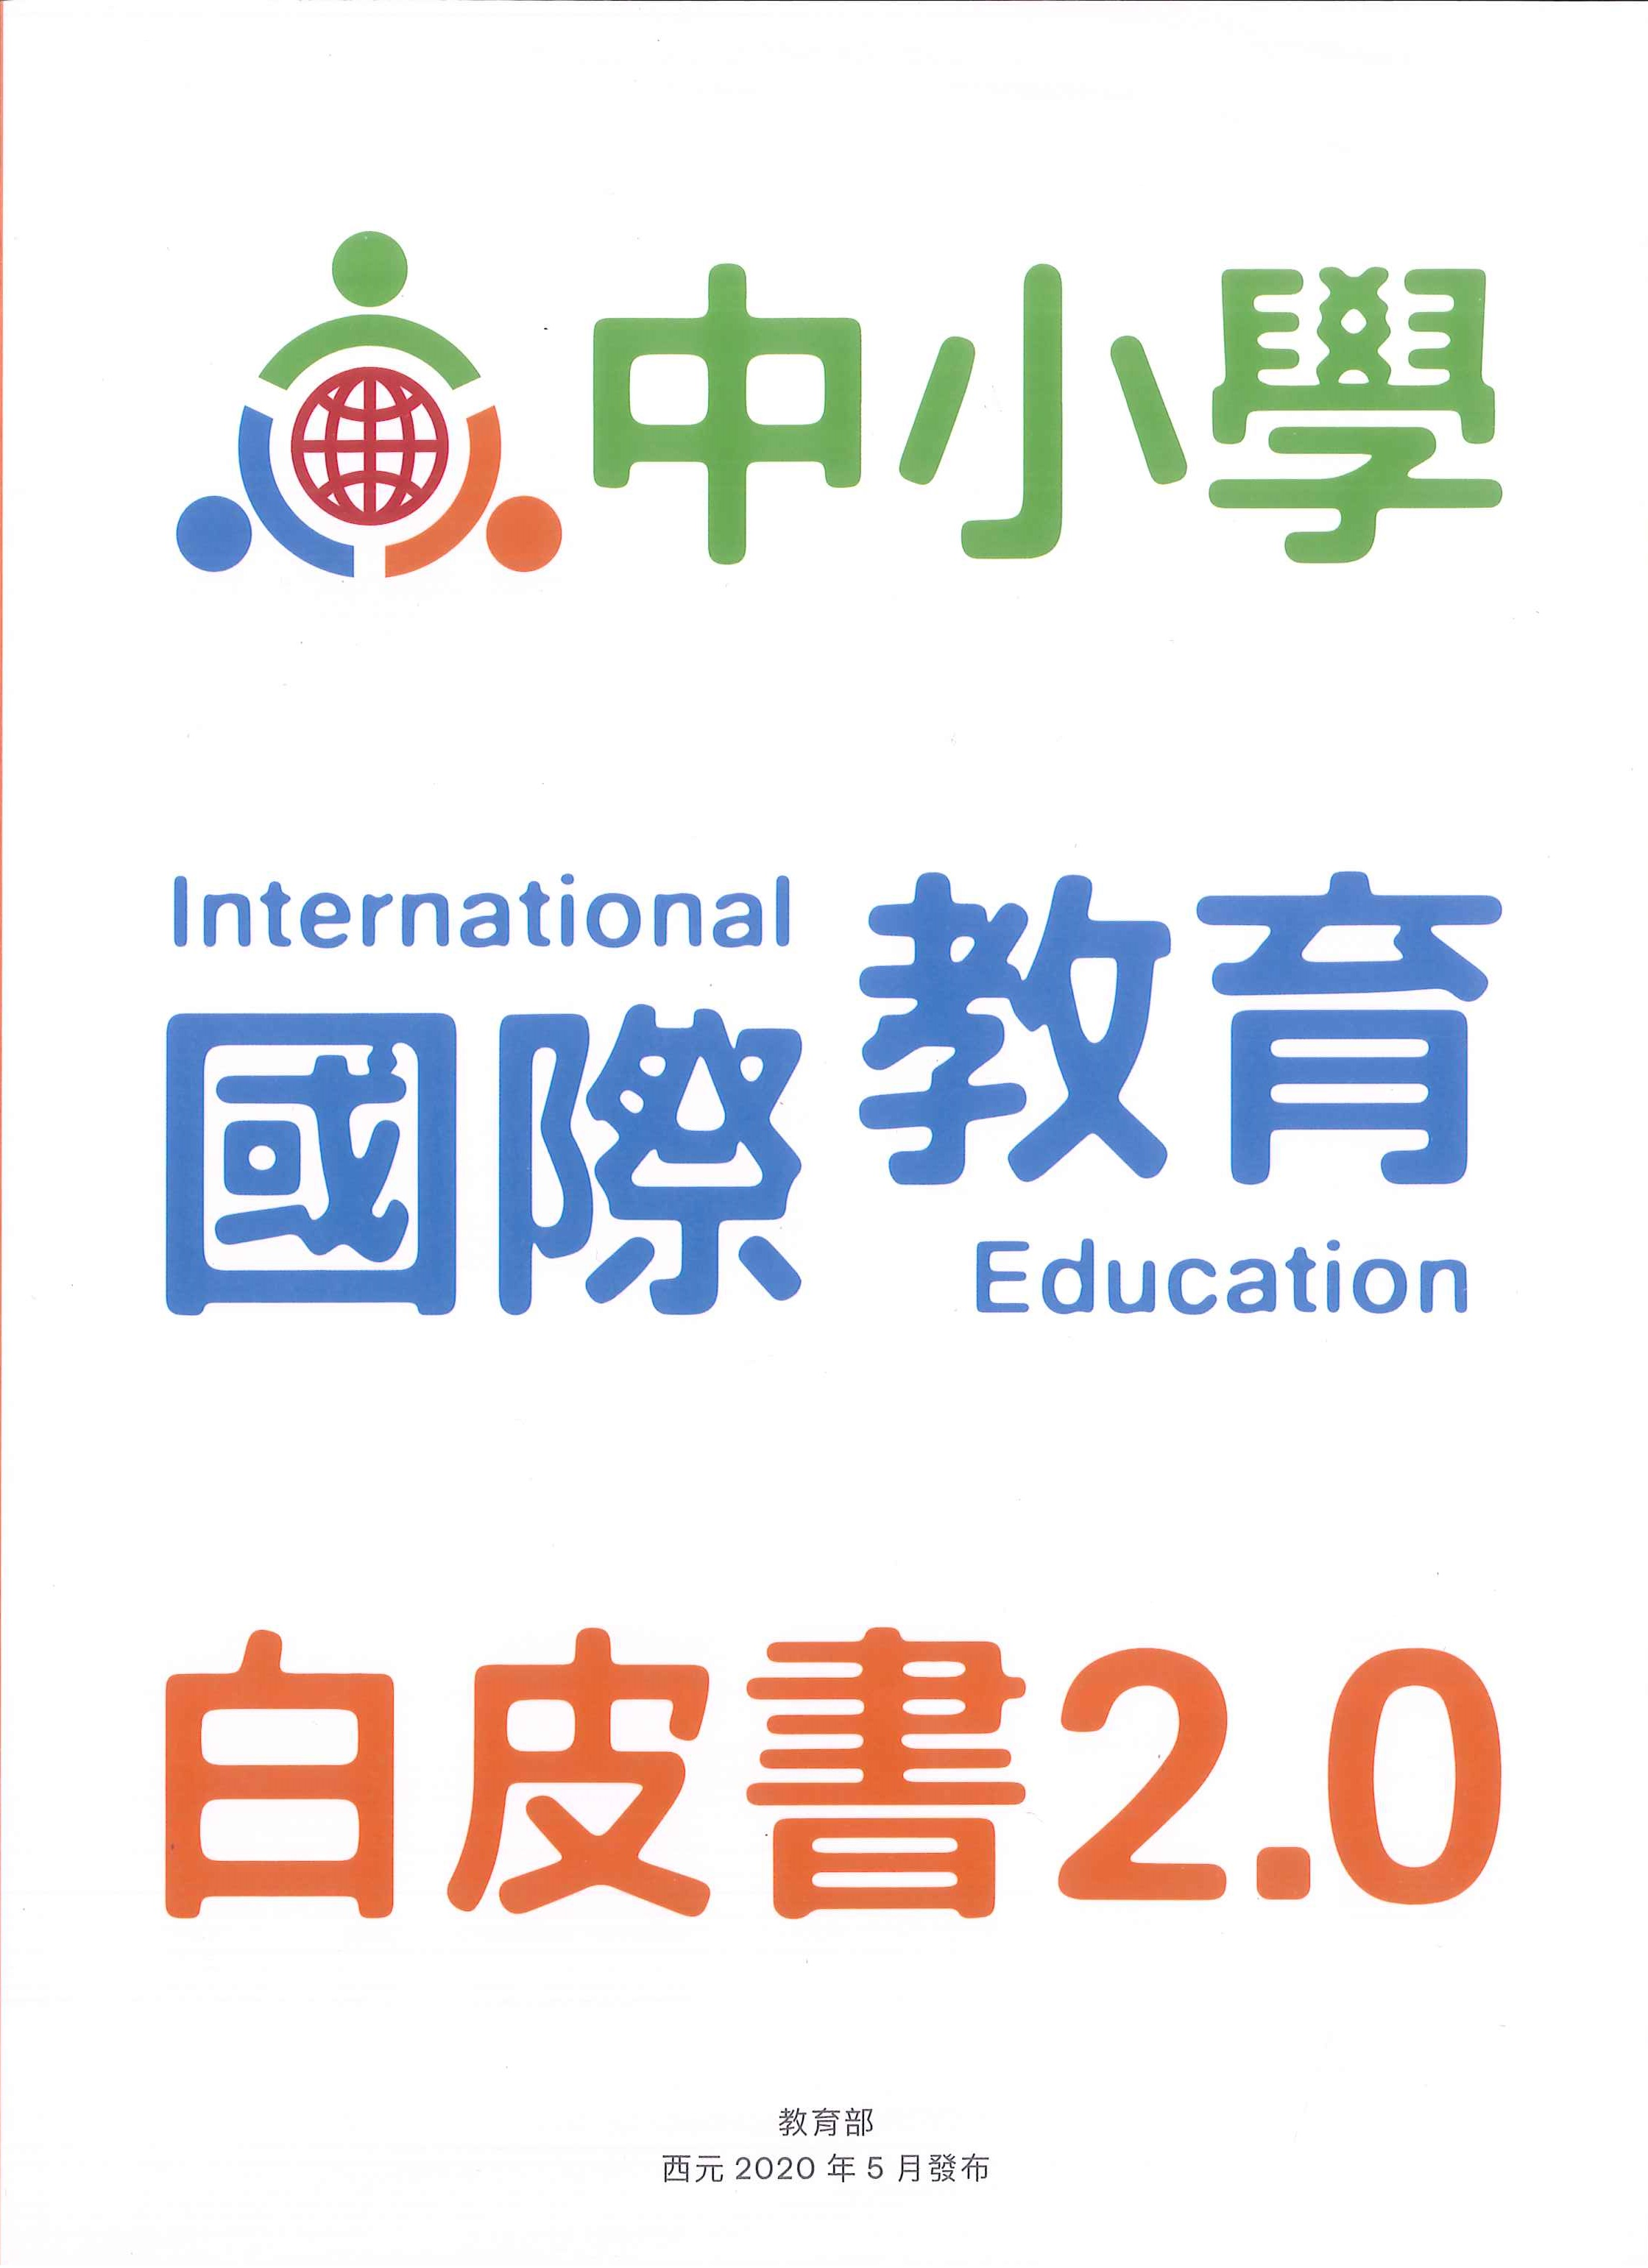 中小學國際教育白皮書 2.0=White paper 2.0 on international education for primary & secondary schools